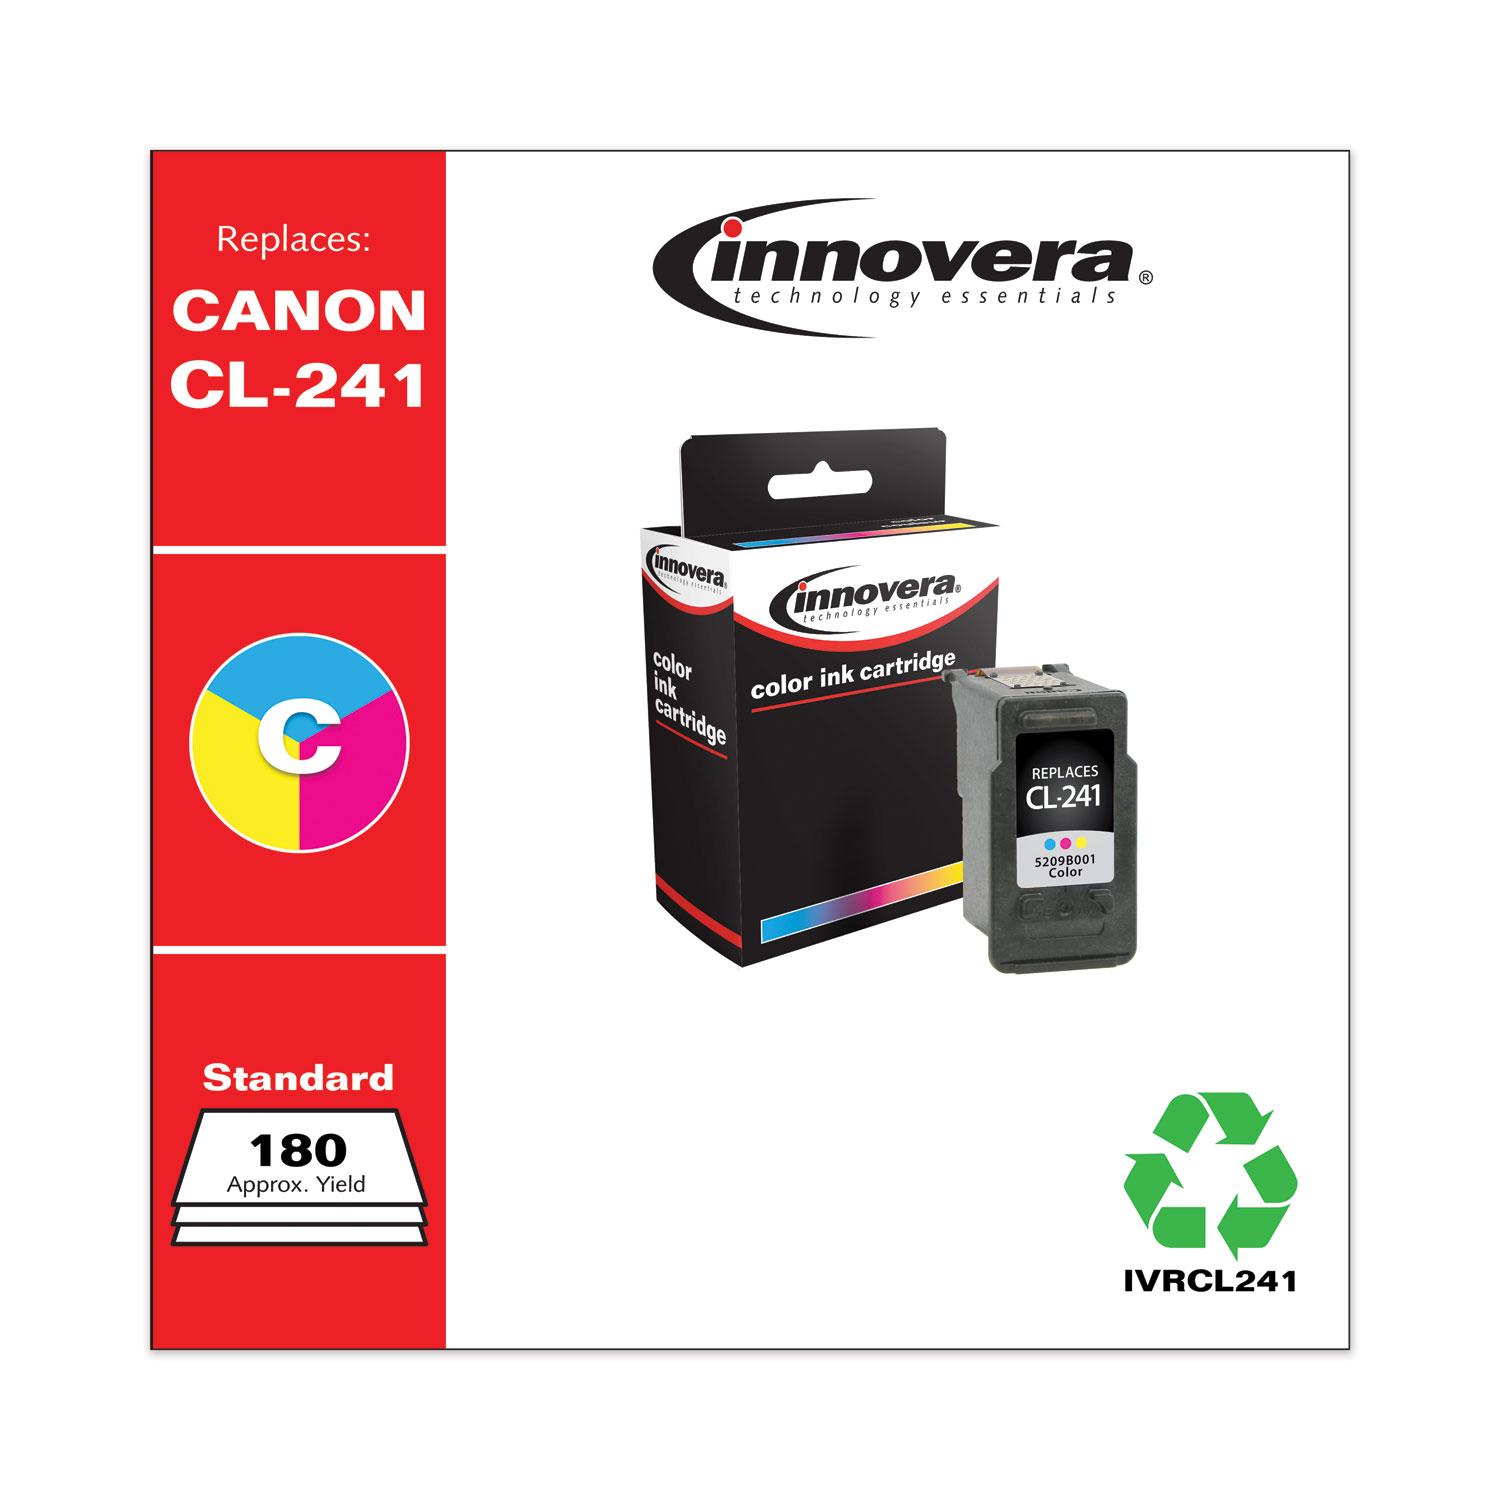 Remanufactured Tri-Color Ink, Replacement for Canon CL-241 (5209B001), 180 Page-Yield IVRCL241